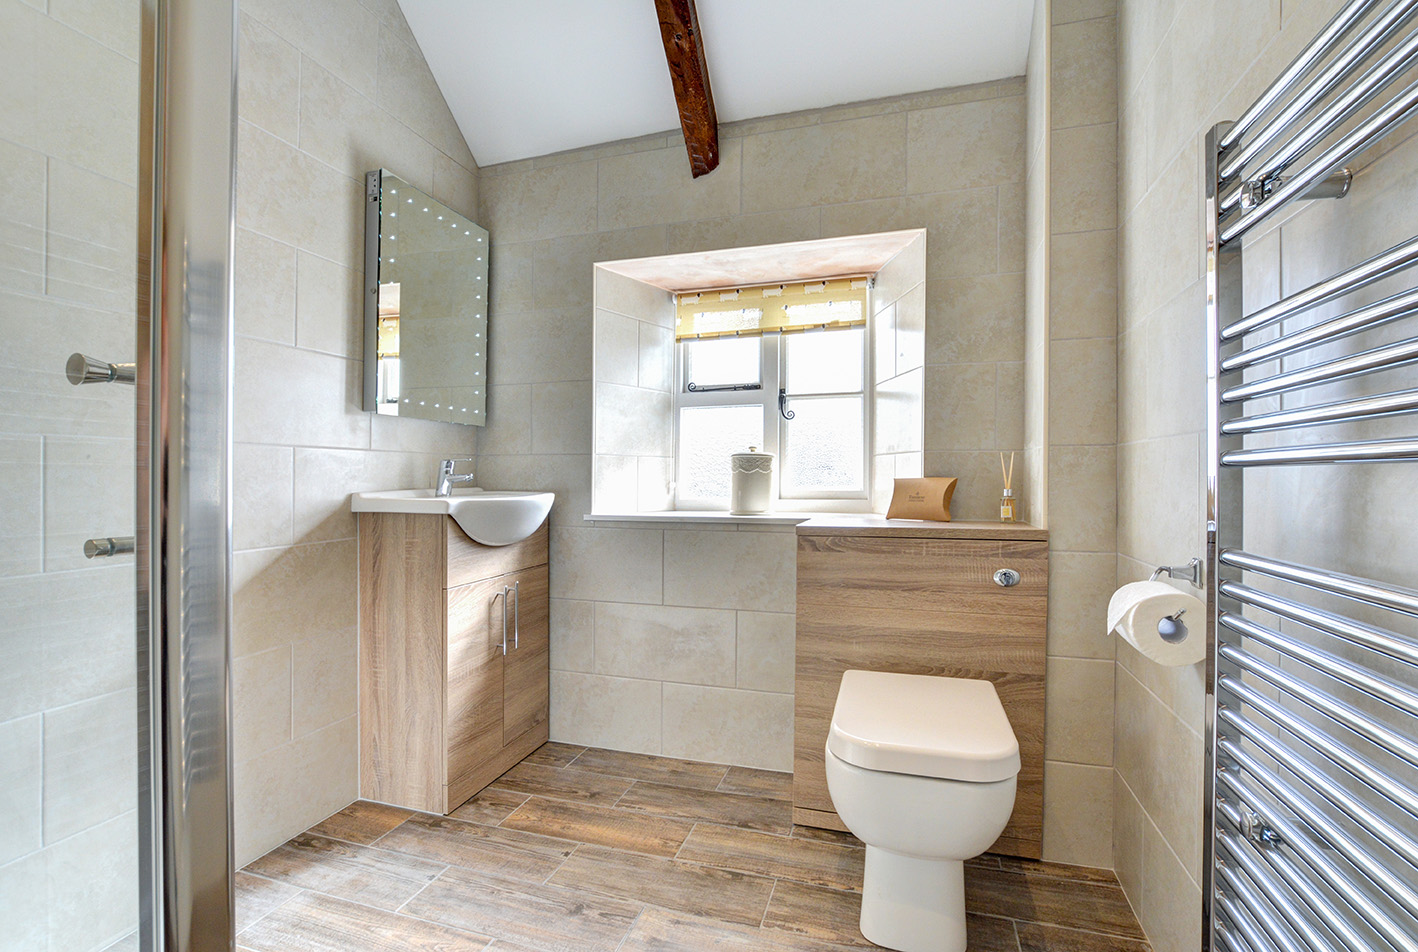 The bathroom of Otterbridge luxury self catering converted barn holiday cottage at Penrose Burden in North Cornwall01.jpg